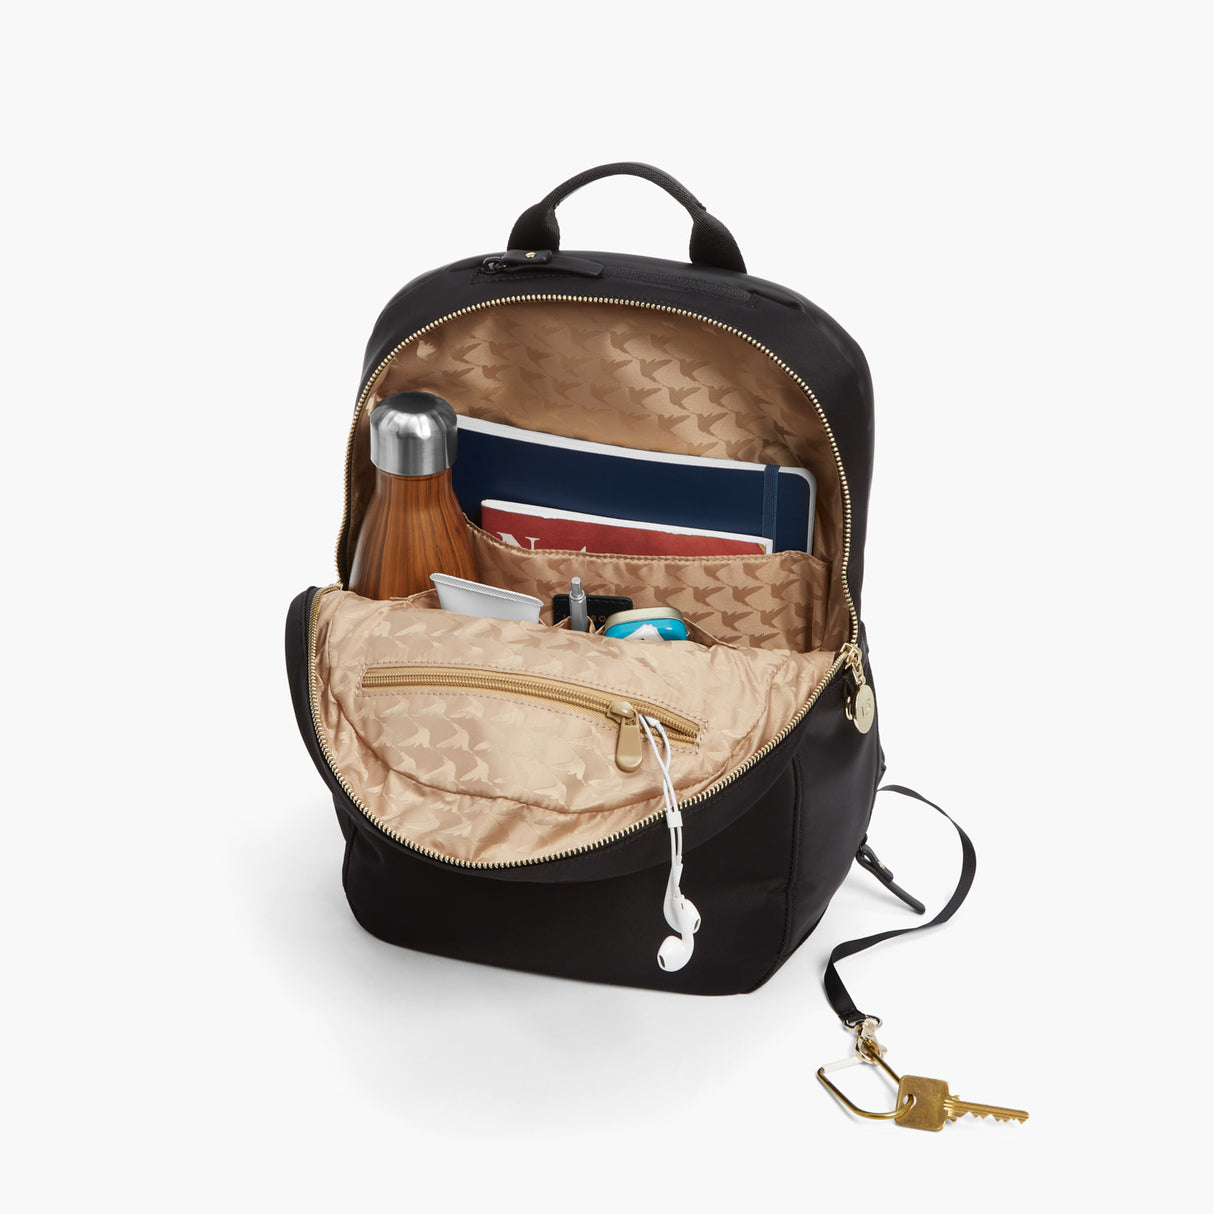 All The Details - Beacon - Nylon - Black / Gold / Camel - Backpack - Lo & Sons